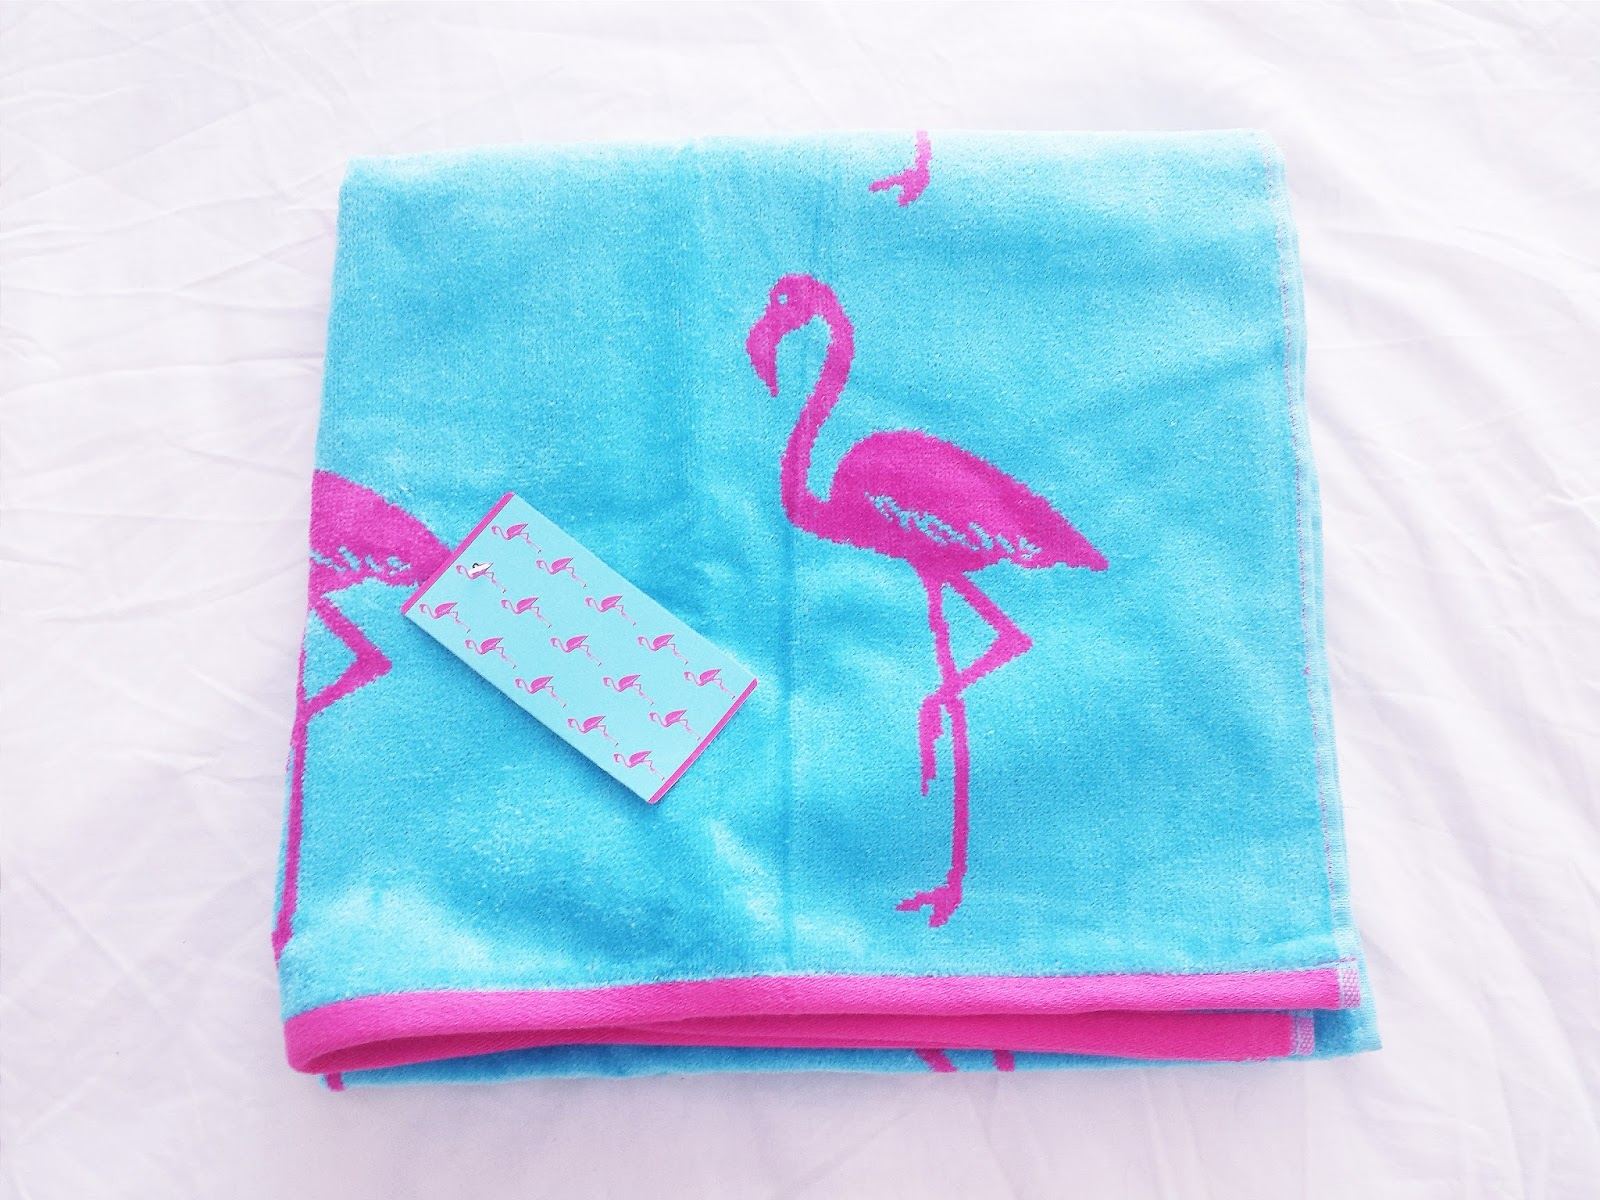 Primark Haul June 2015 Blue & Pink Flamingo Towel